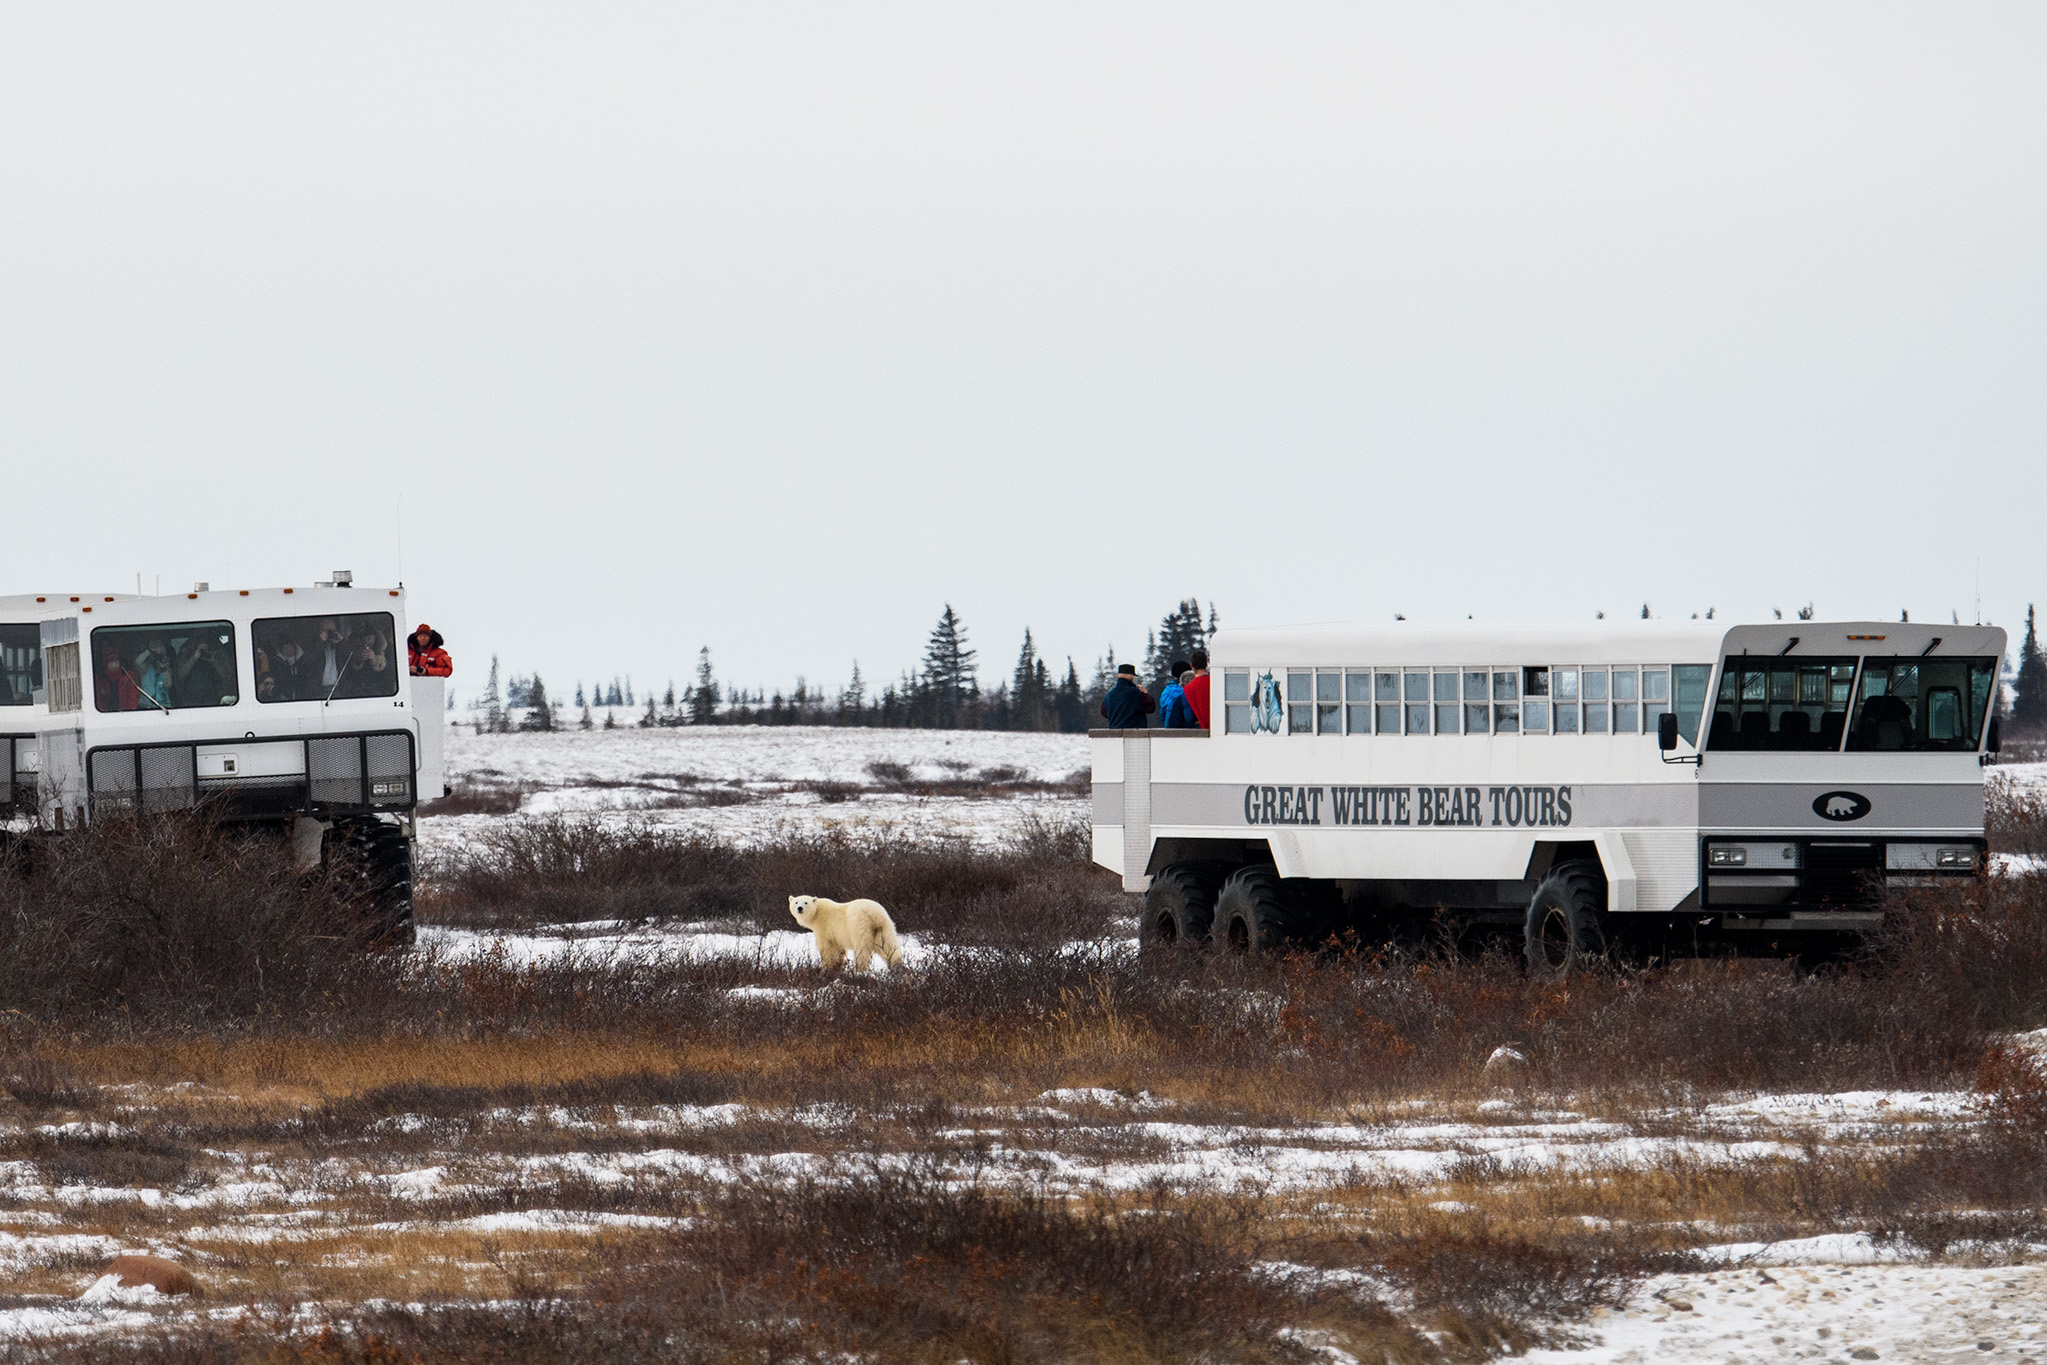 Special Polar Rovers or Tundra Buggies are purpose built observation vehicles that are allowed to follow several trails in the Wapusk National Park where bears gather for several weeks waiting for the Hudson Bay to freeze over. Guests would go out each day for excellent opportunities to see the tundra and boreal forest landscapes and wildlife!